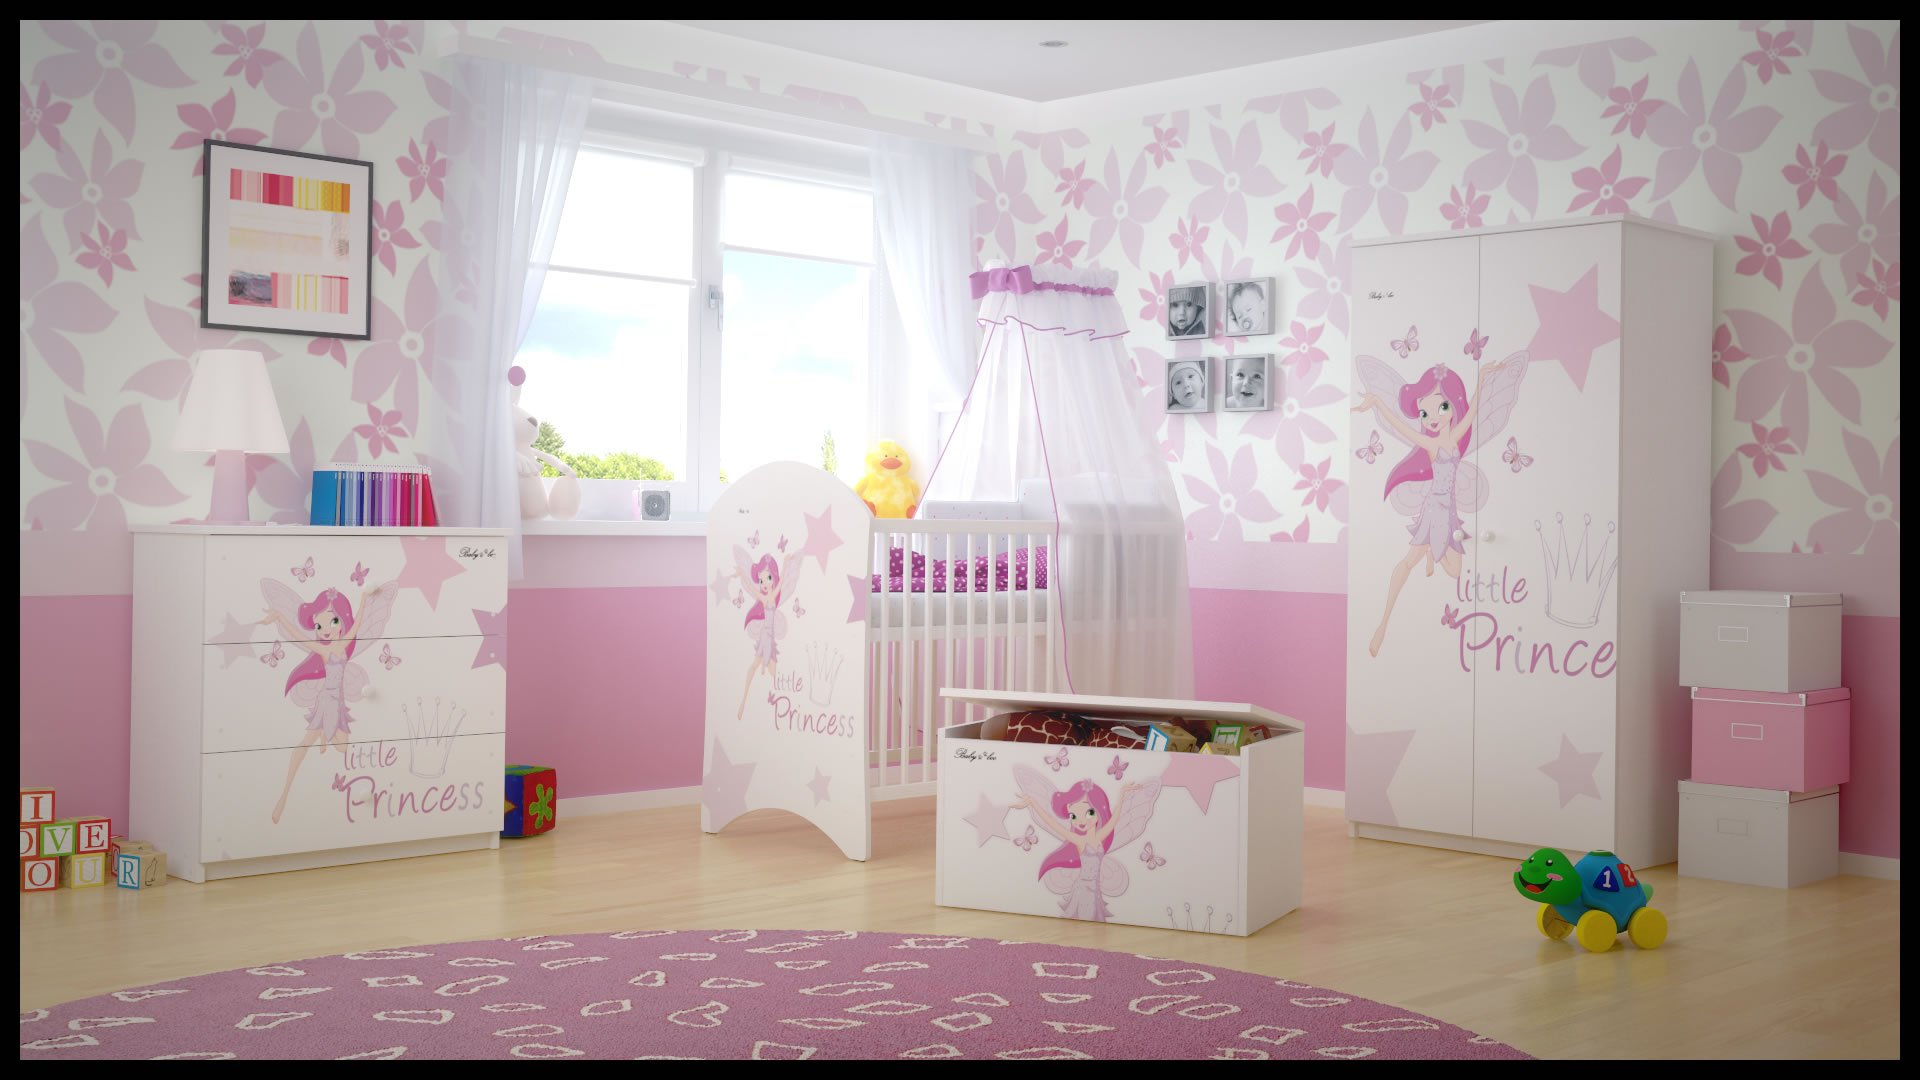 5 PCS BABY NURSERY FURNITURE SET - COT + MATTRESS + WARDROBE + CHEST OF DRAWERS + TOY BOX (model 16)  Included: cot + mattress + wardrobe + chest of drawers + toy box Material: wood GREAT QUALITY 1